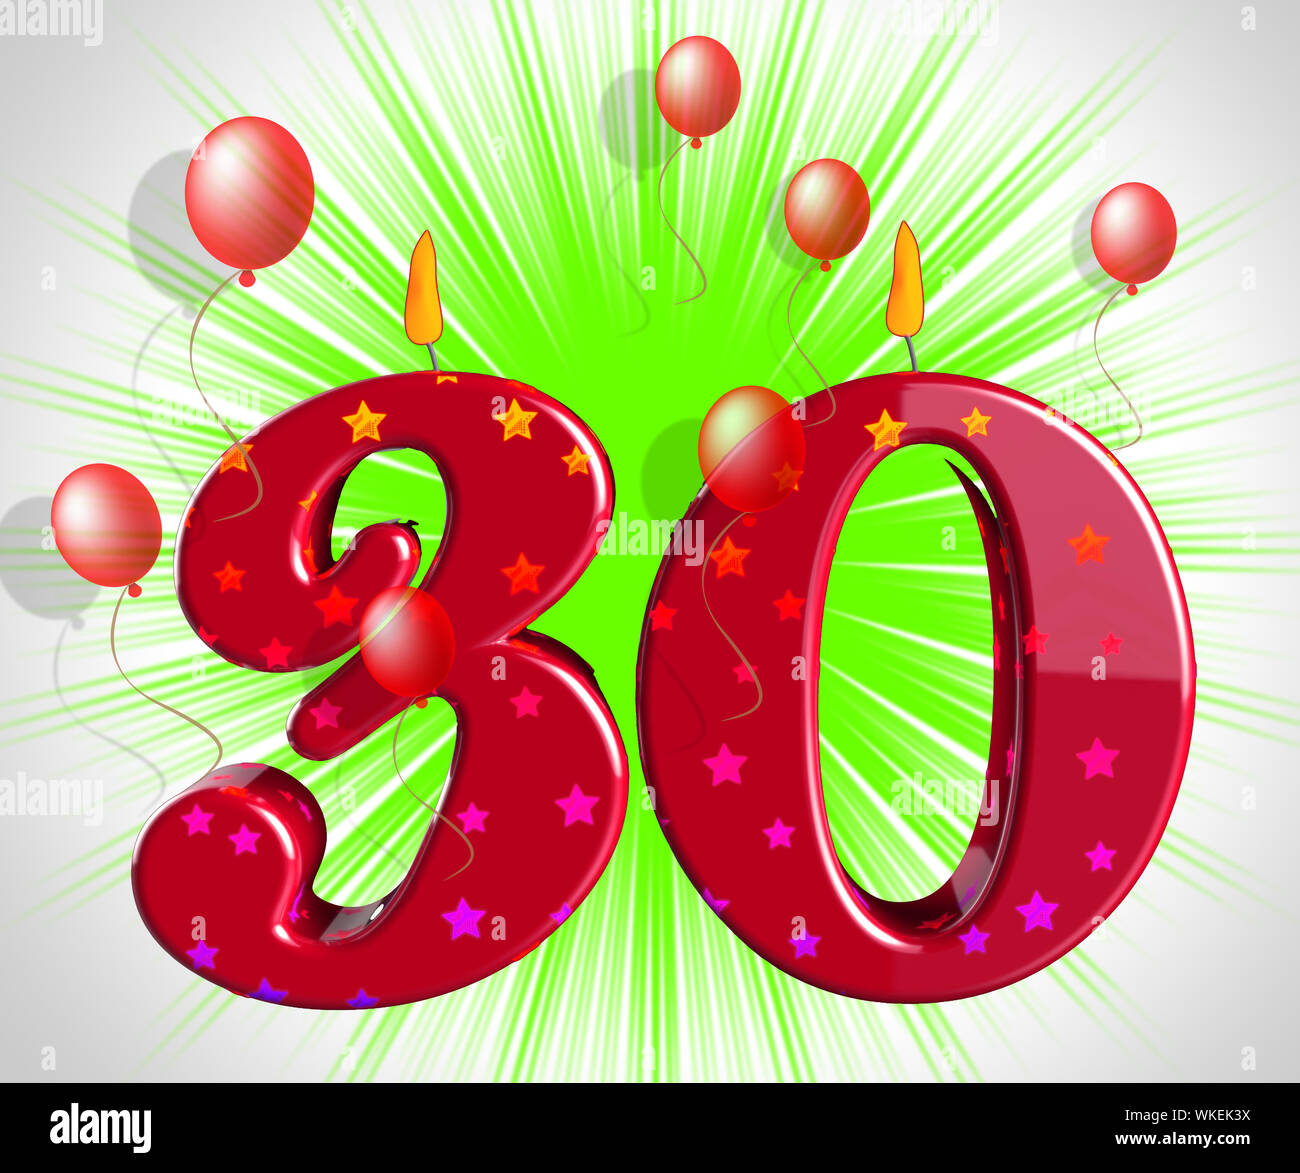 number 30 birthday meaning